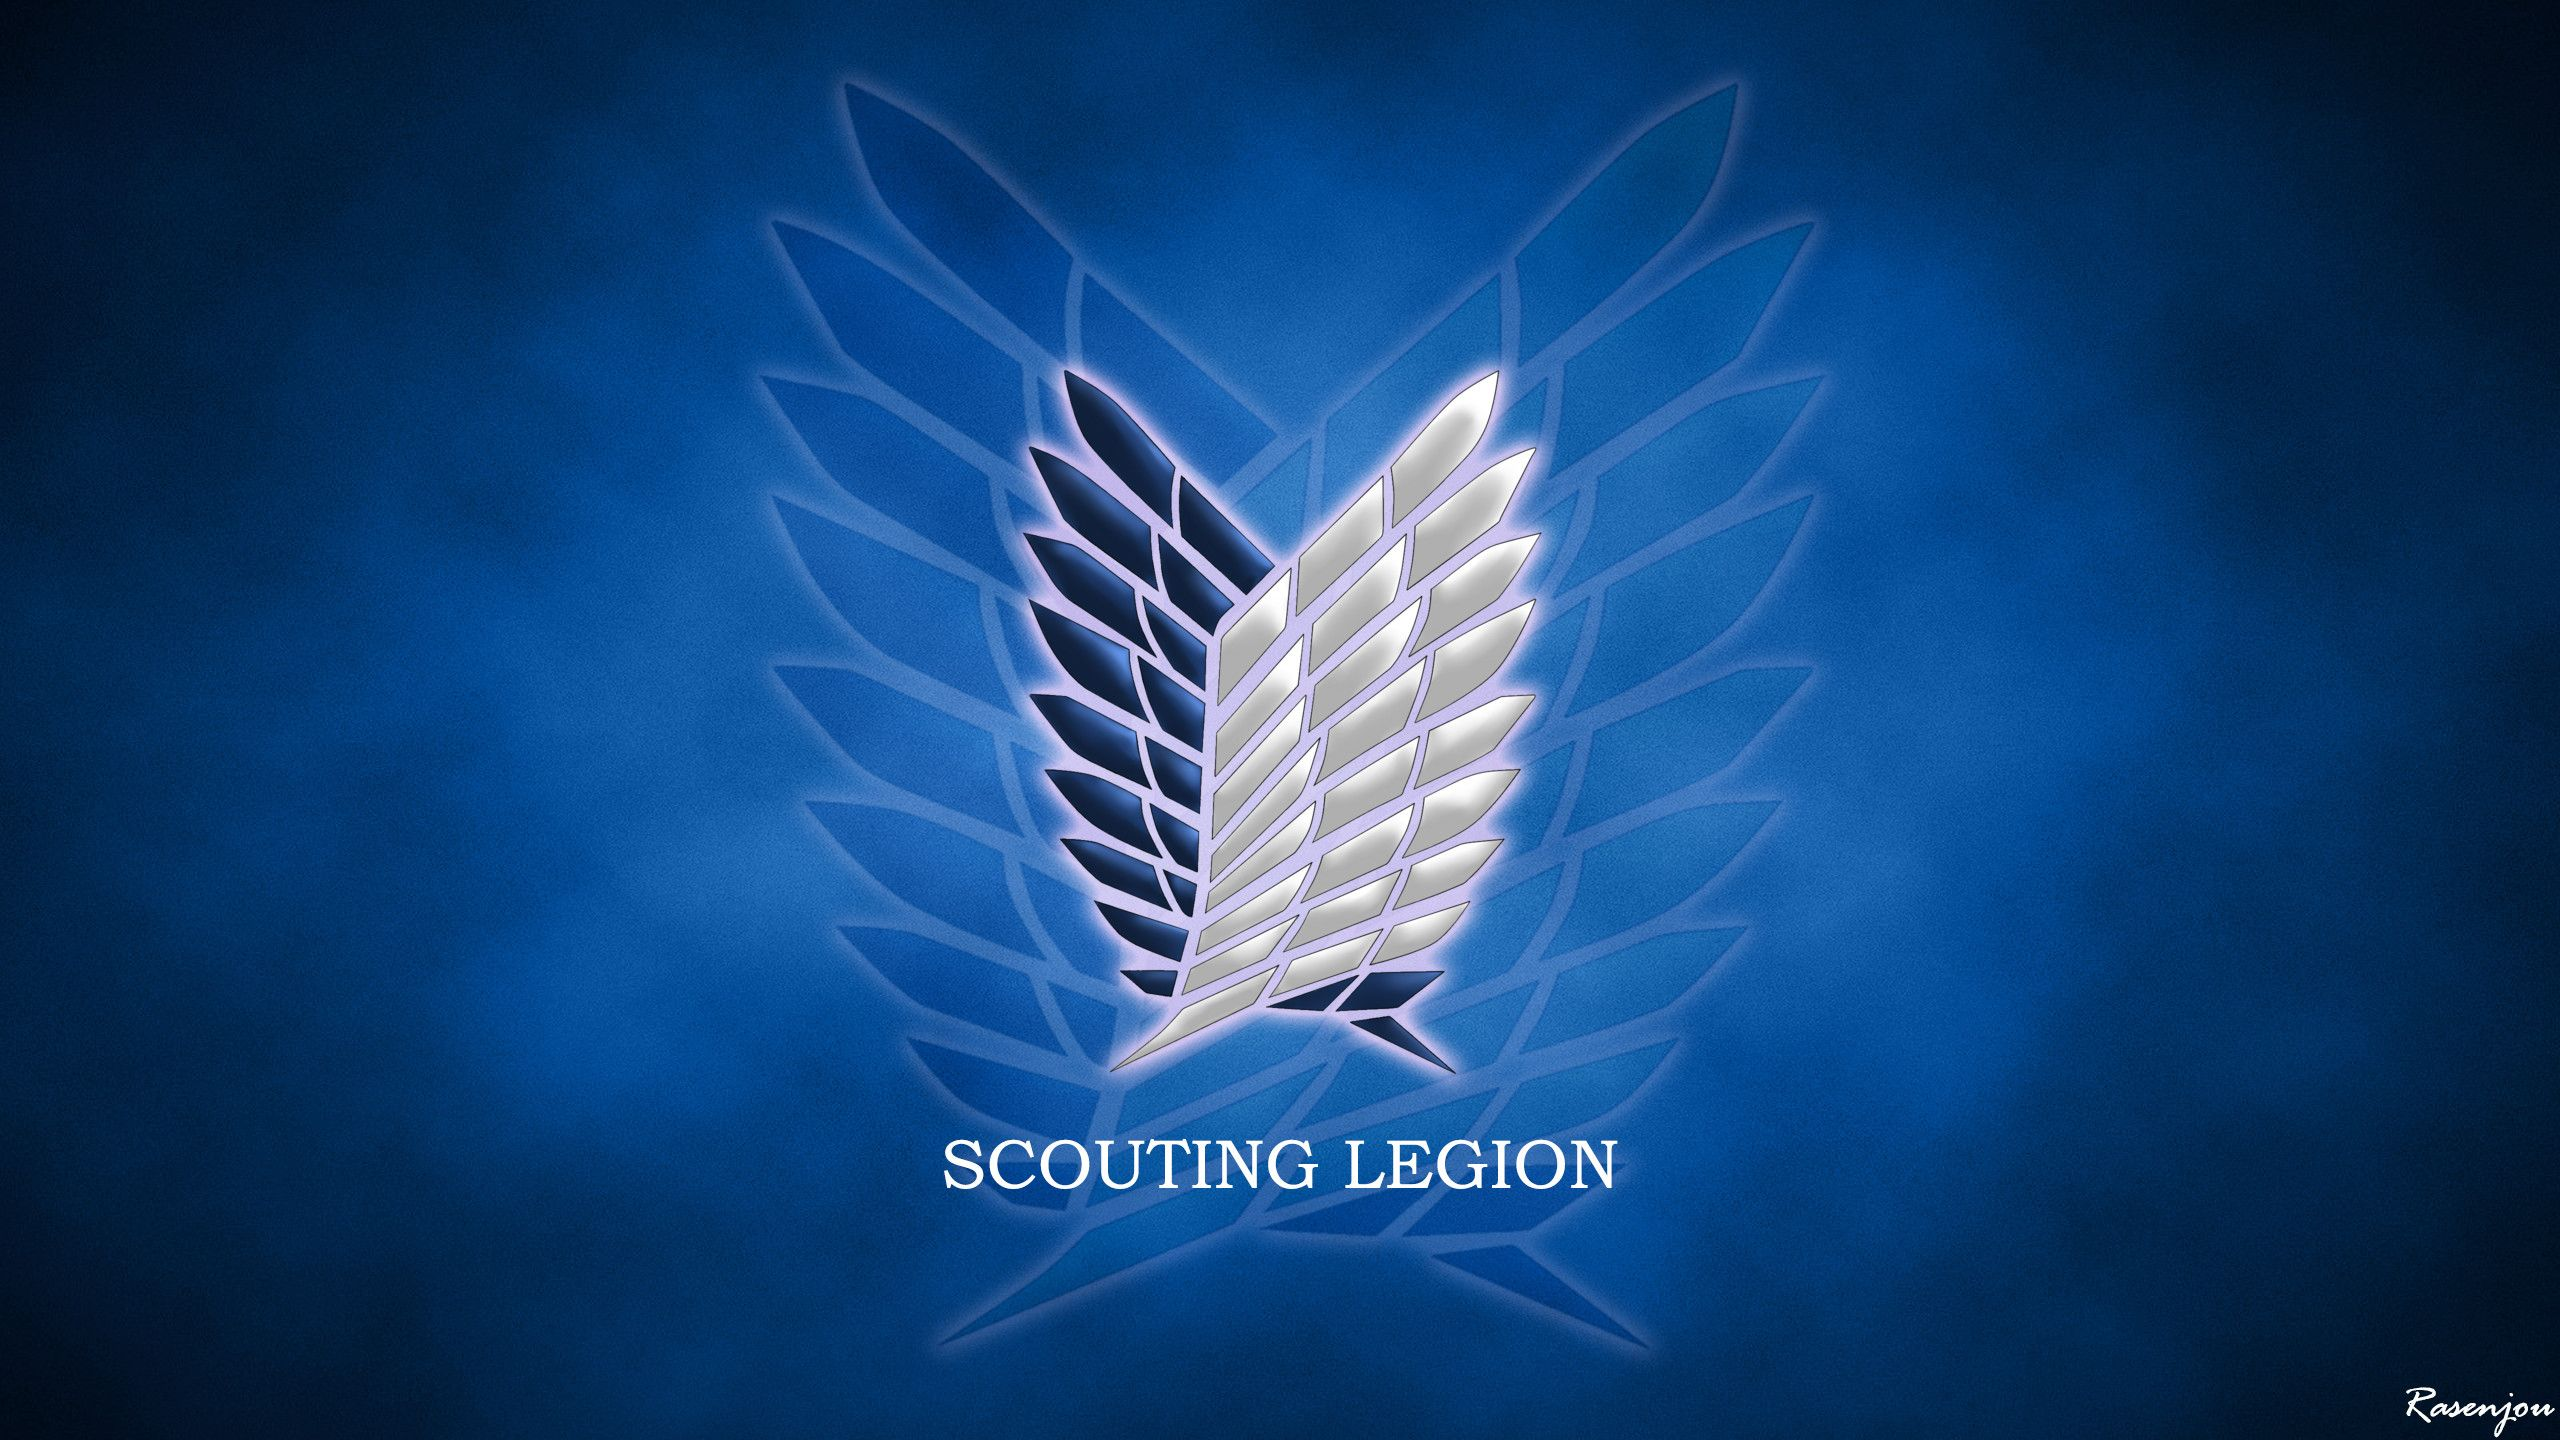 Scouting Legion Wallpapers Top Free Scouting Legion